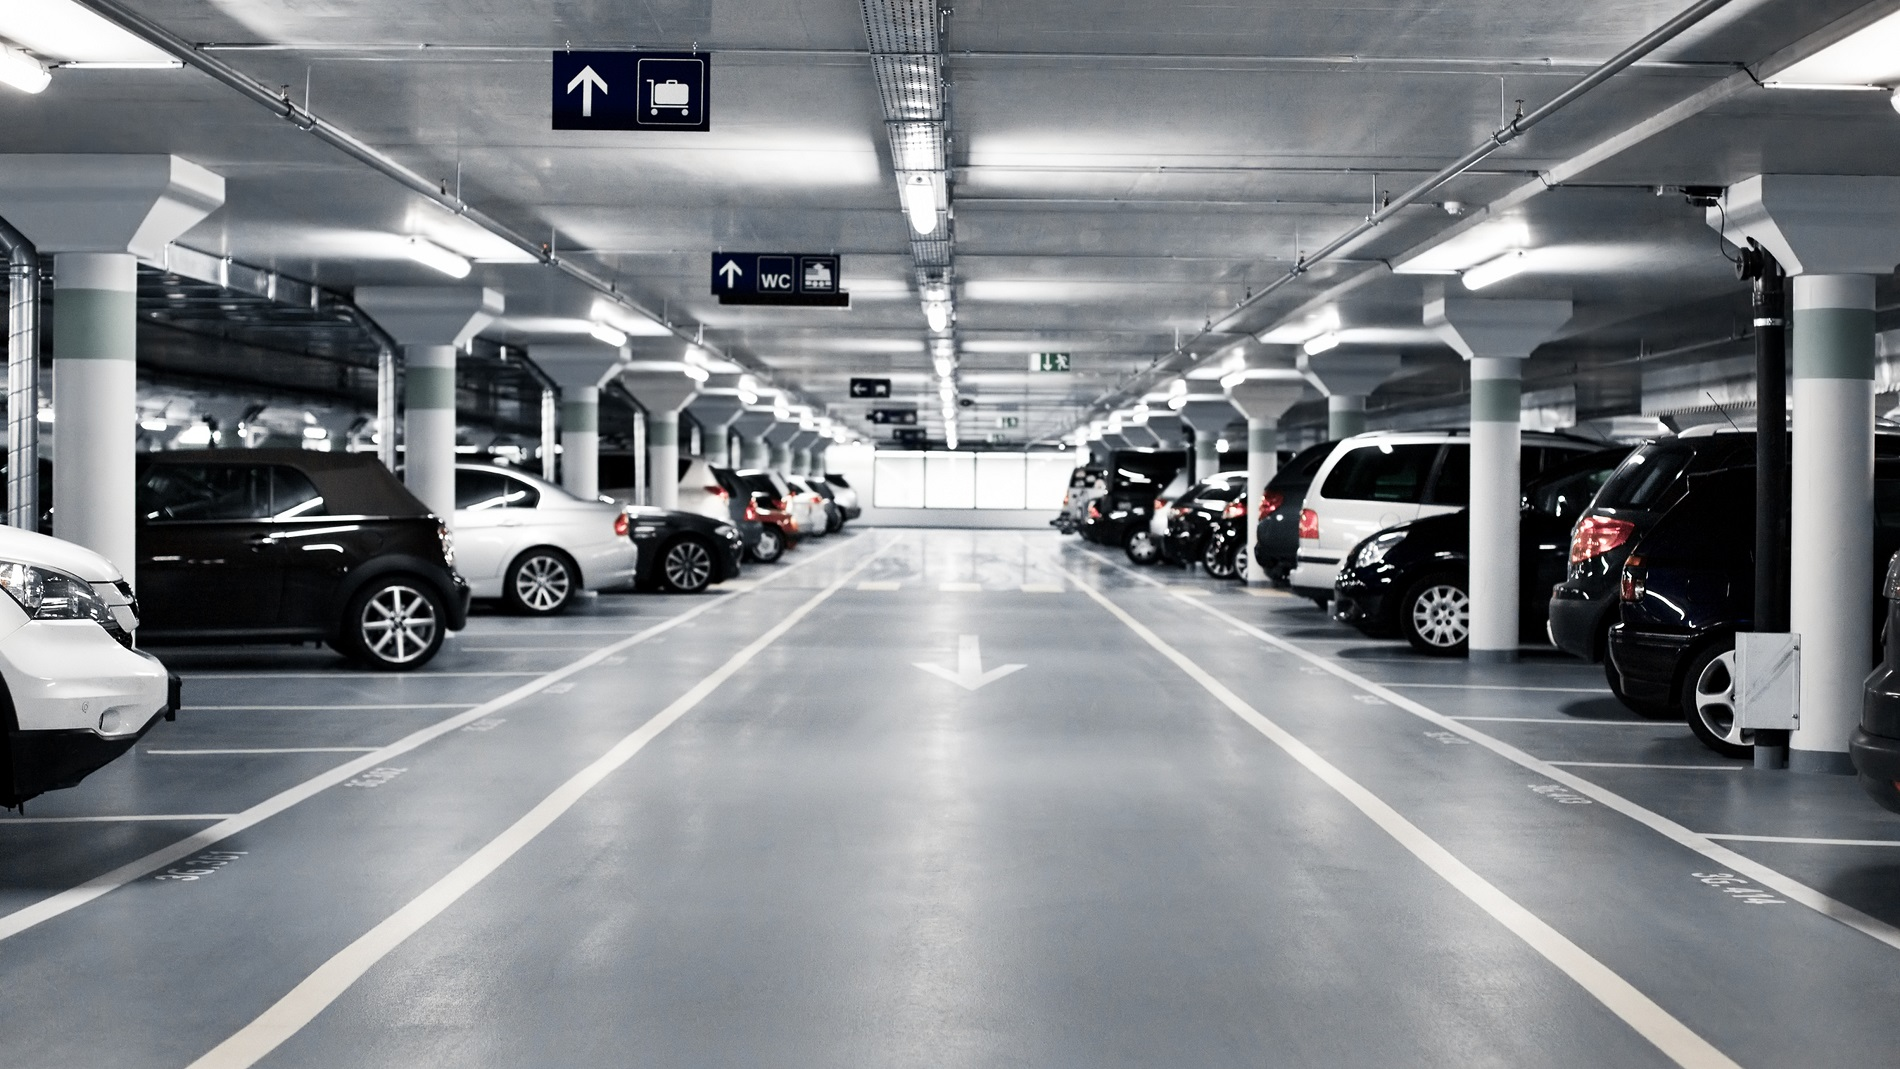 Parking Interior Lifestyle Middle East